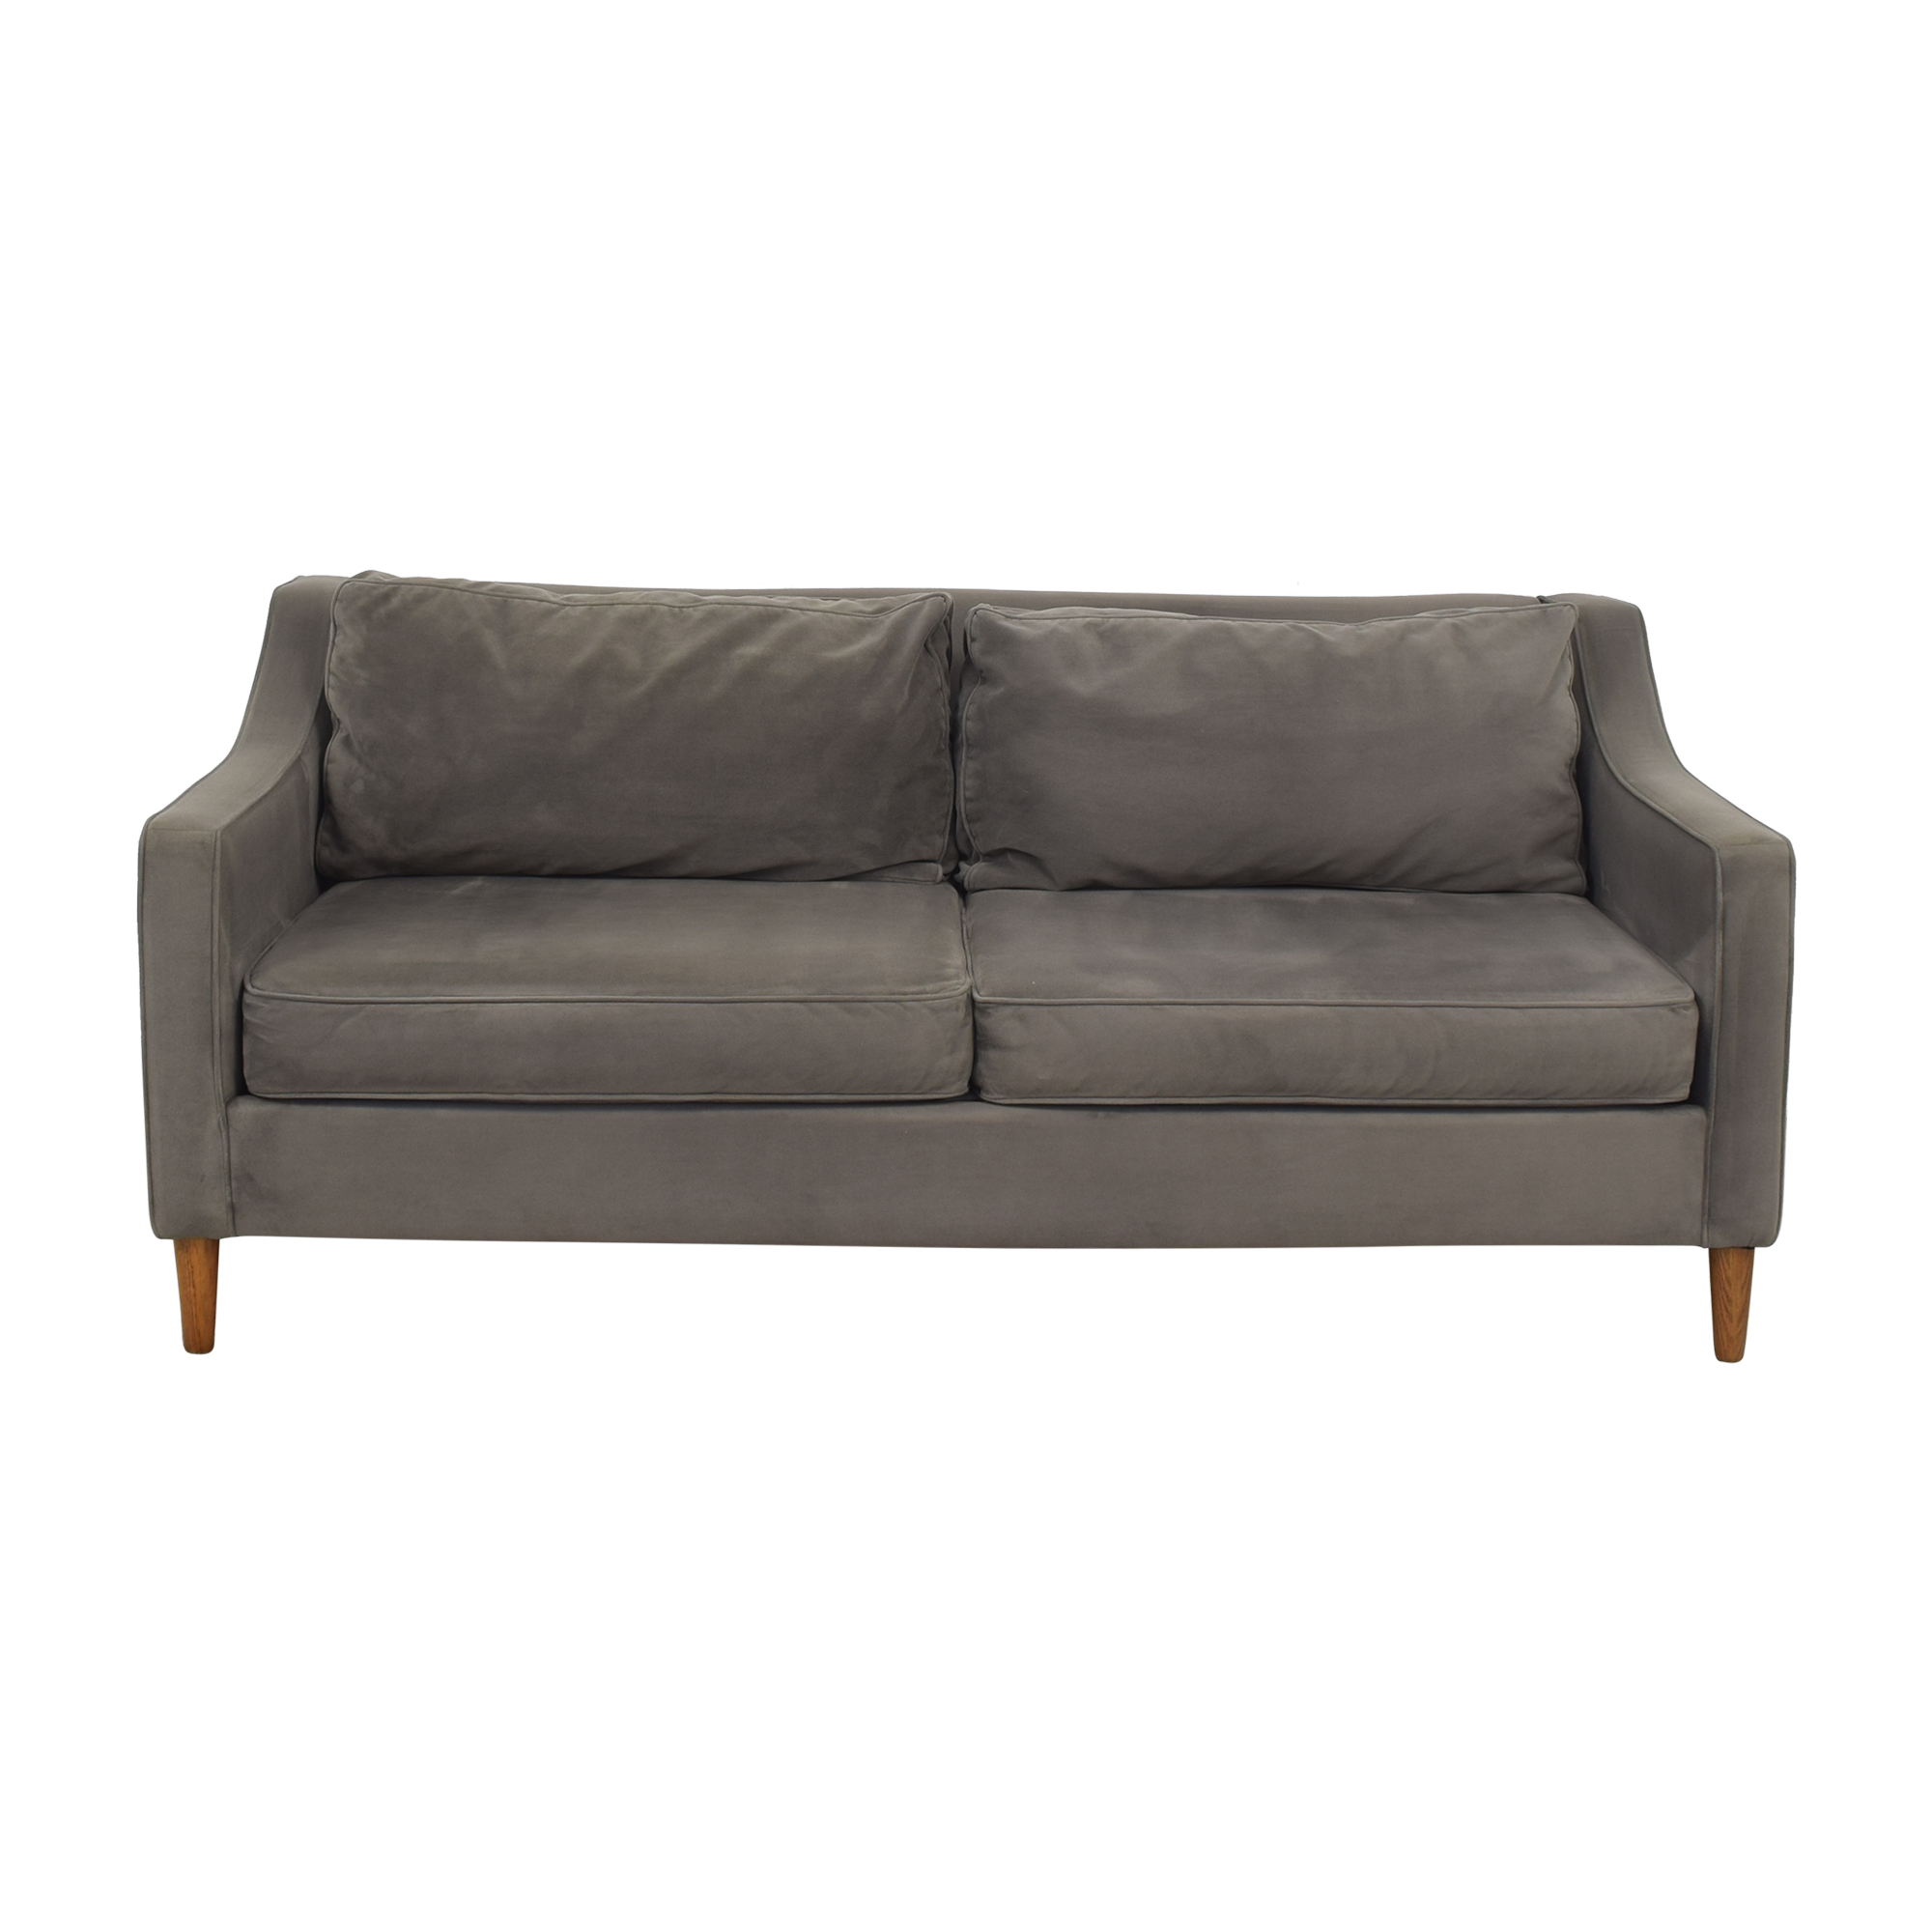 West Elm West Elm Paidge Sofa ct